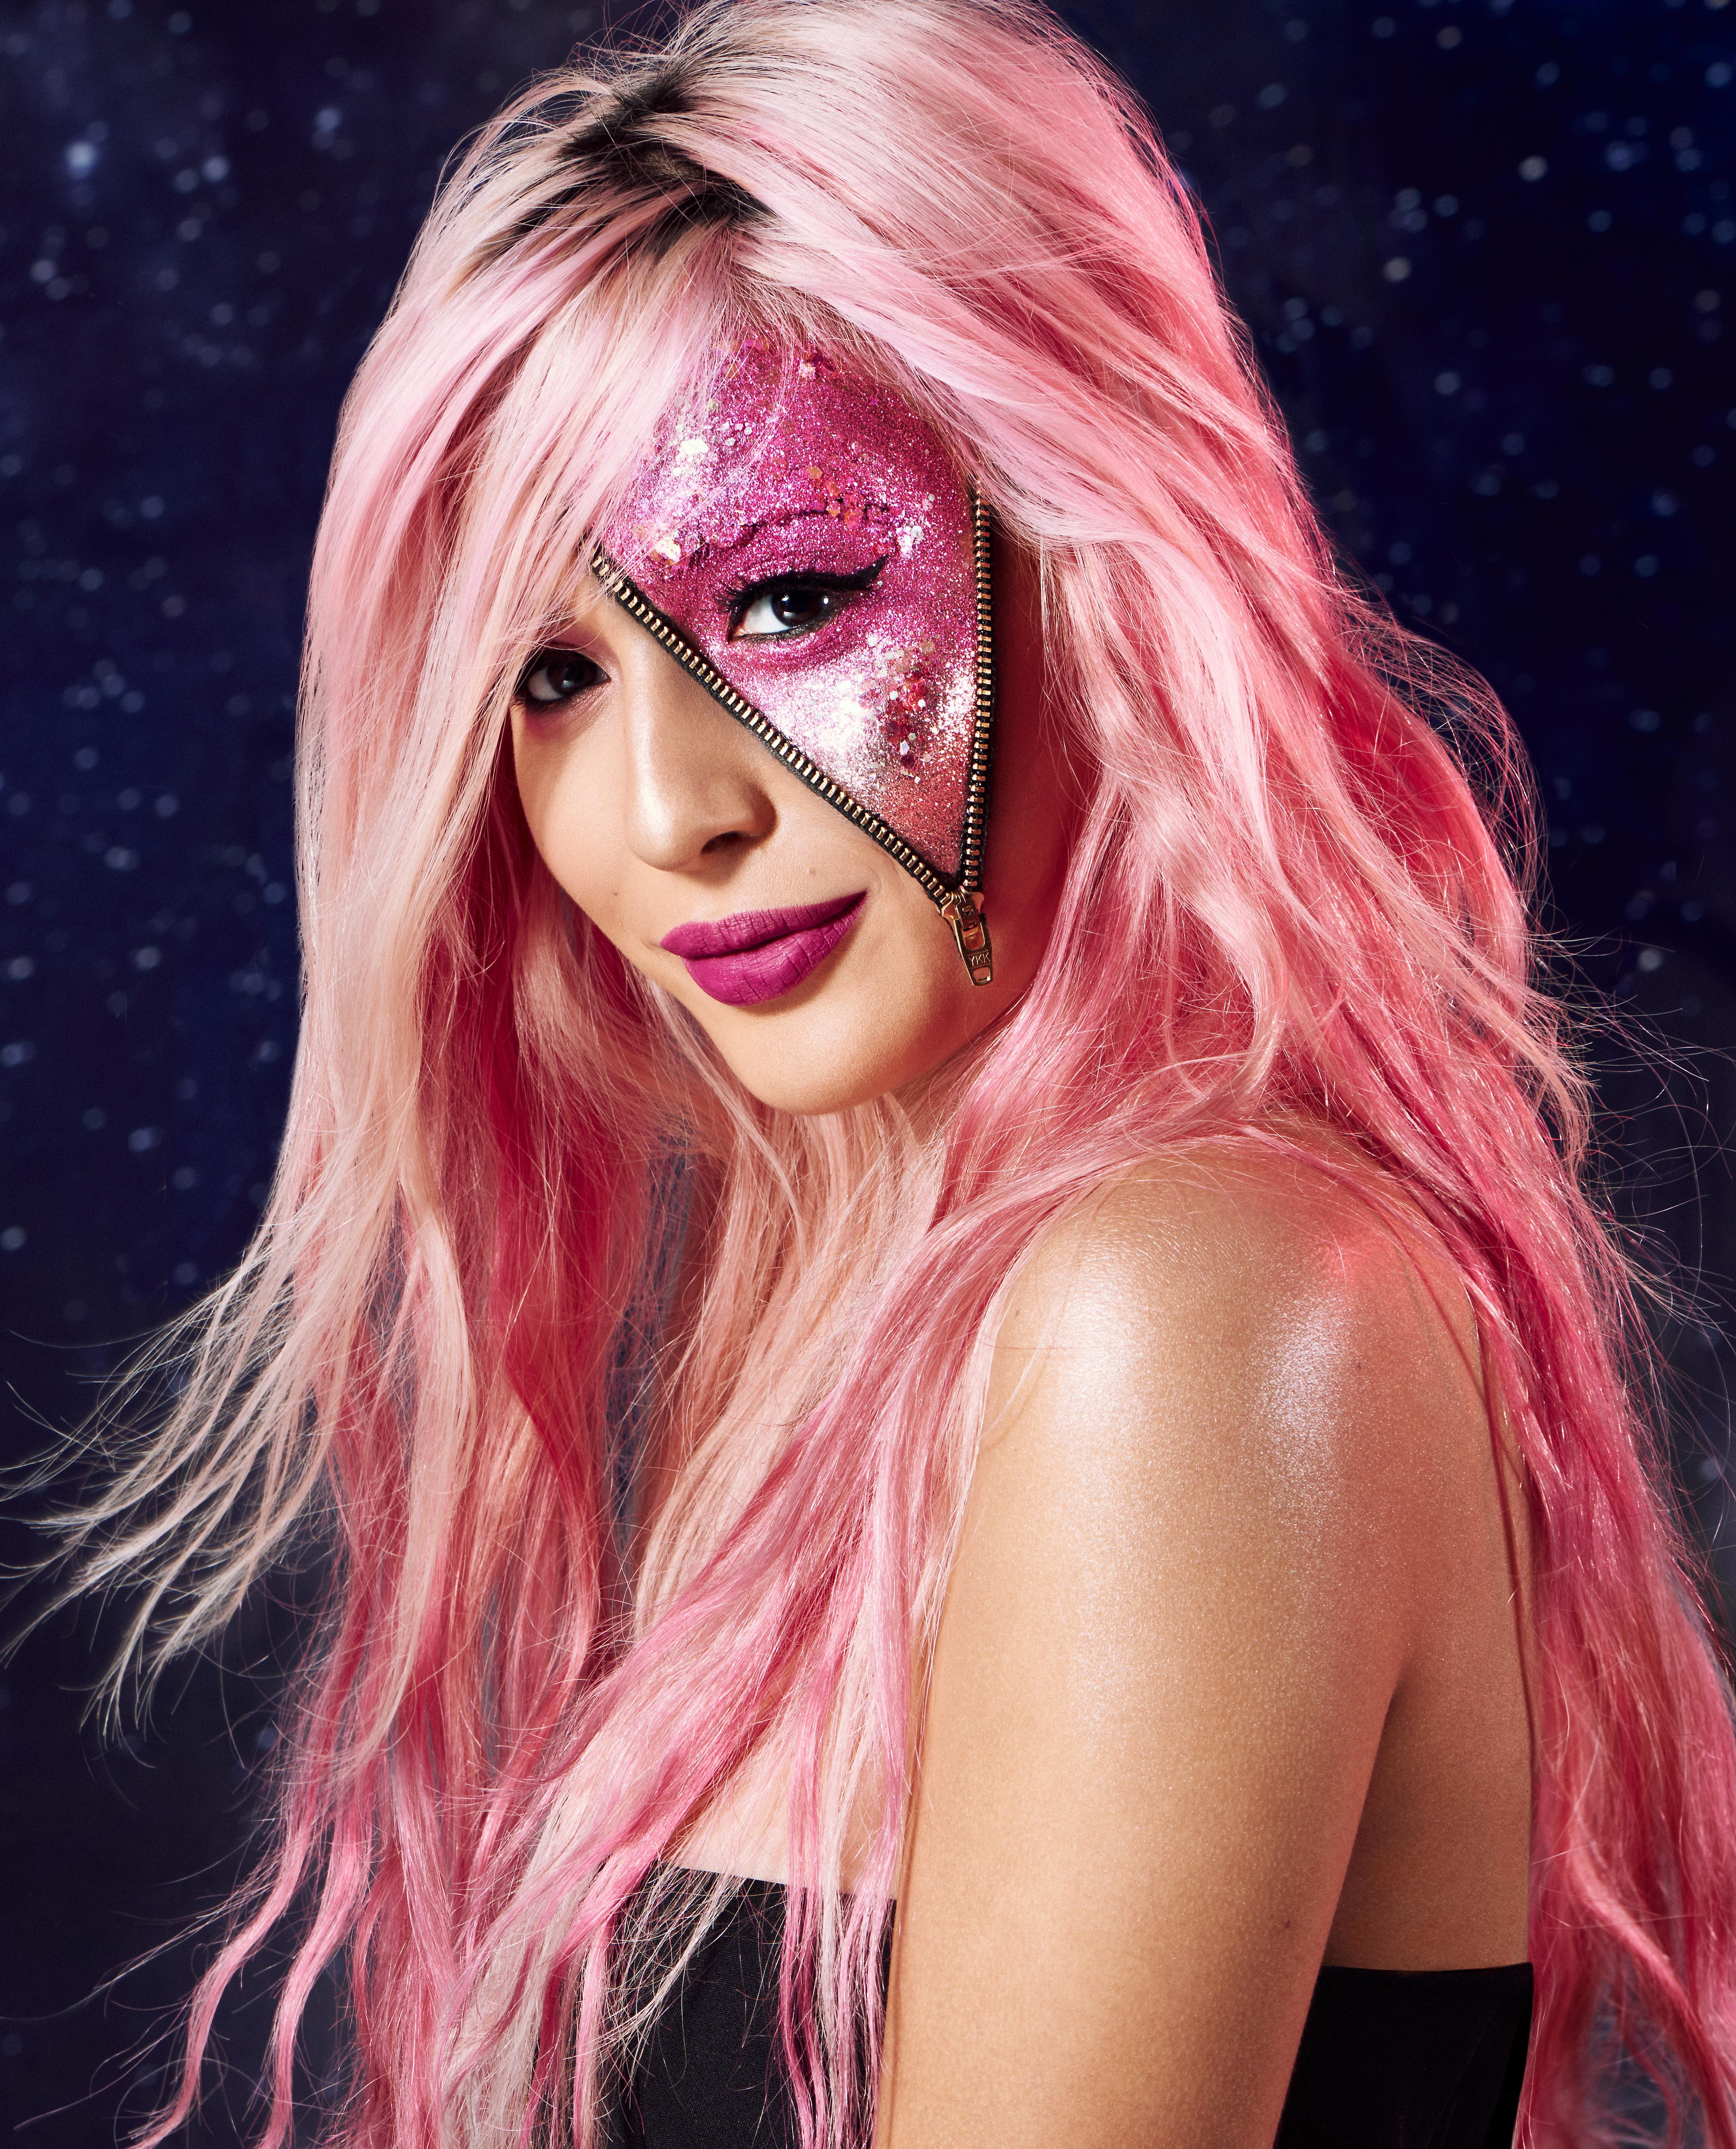 Halloween Hair Ideas 2018 Glitter Zip Looking For Some Fun Halloween Costume Ideas Or Some Cool Spoo Halloween Hair Halloween Makeup Amazing Halloween Makeup